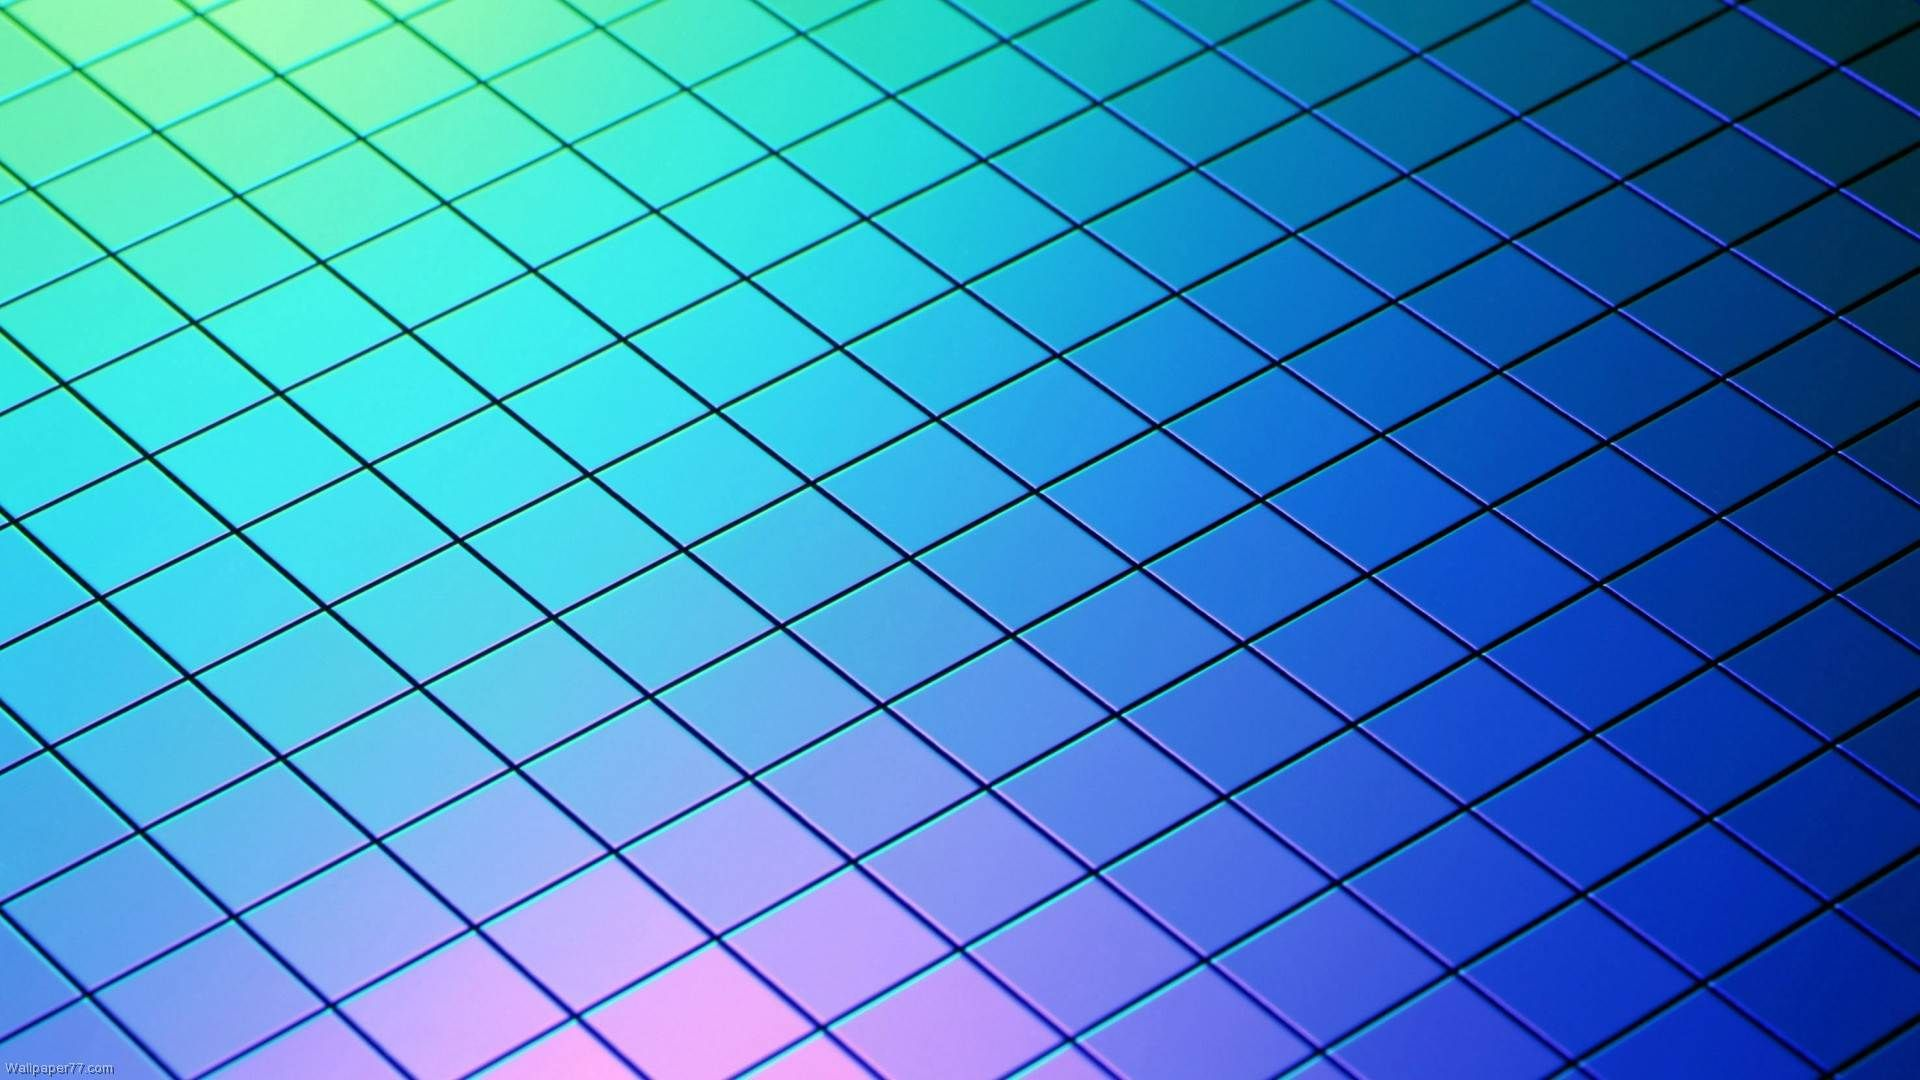 Collection Of Cool Pattern Backgrounds On Hdwallpapers 1300 1035 Cool Pattern Wallpapers Adora Blue Background Patterns Background Patterns Pattern Wallpaper